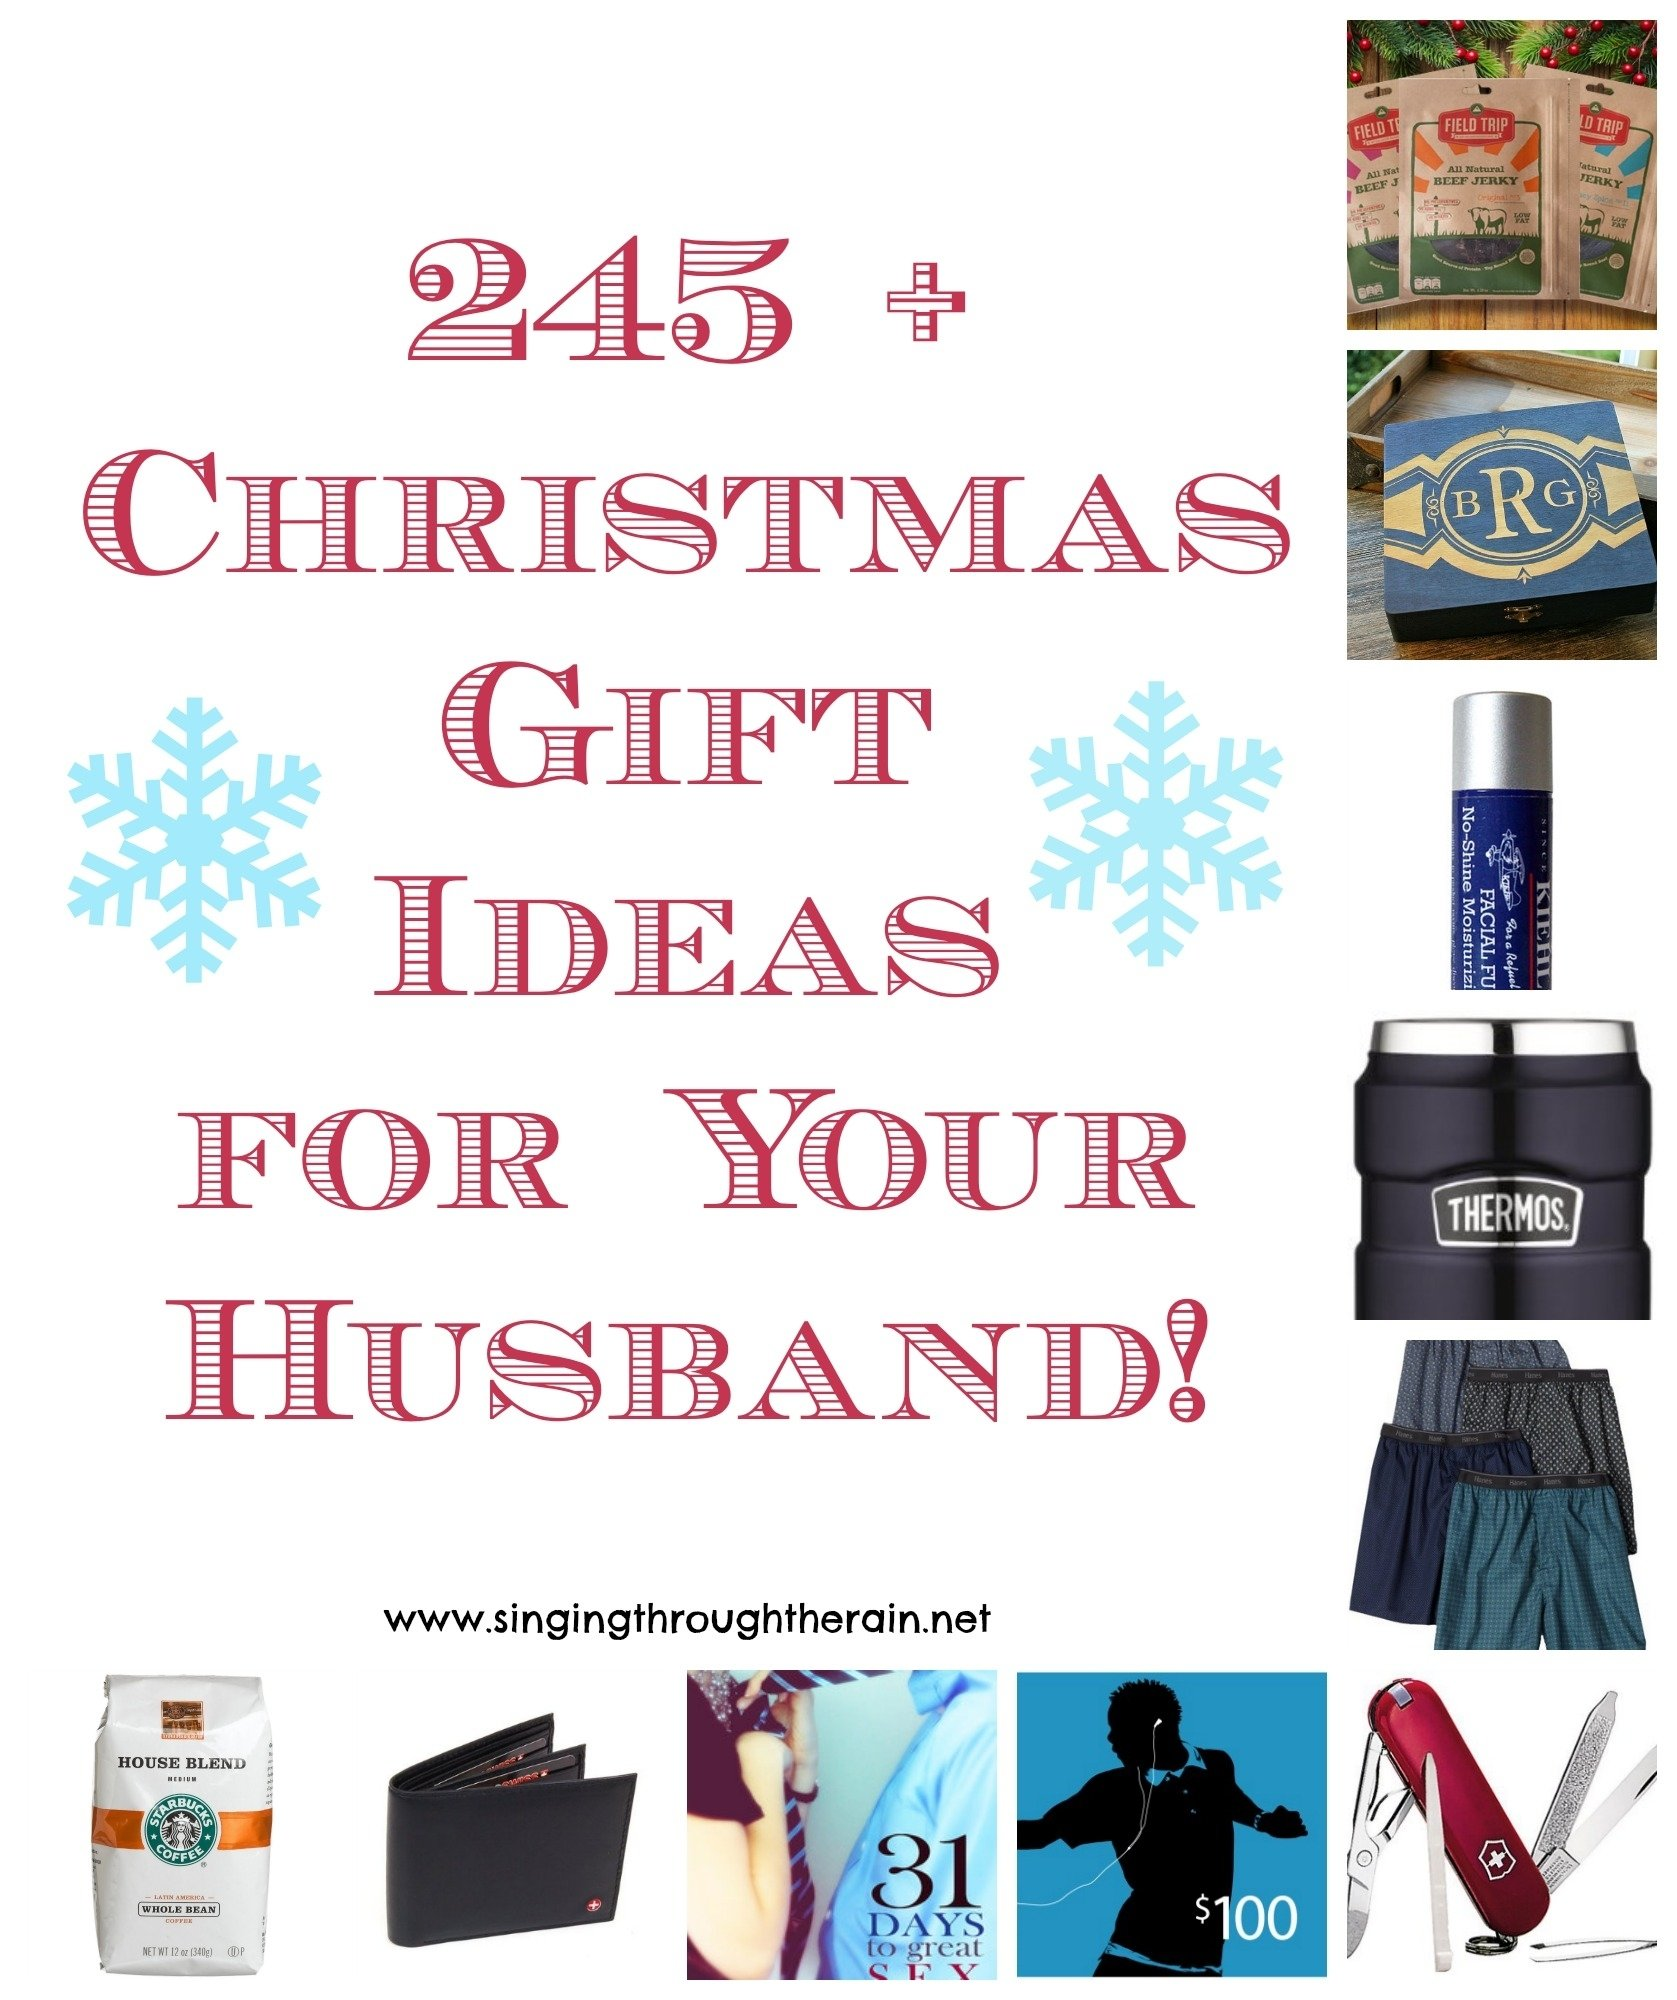 10 Attractive Christmas Gift Ideas For Him 245 christmas gift ideas for your husband singing through the rain 18 2021